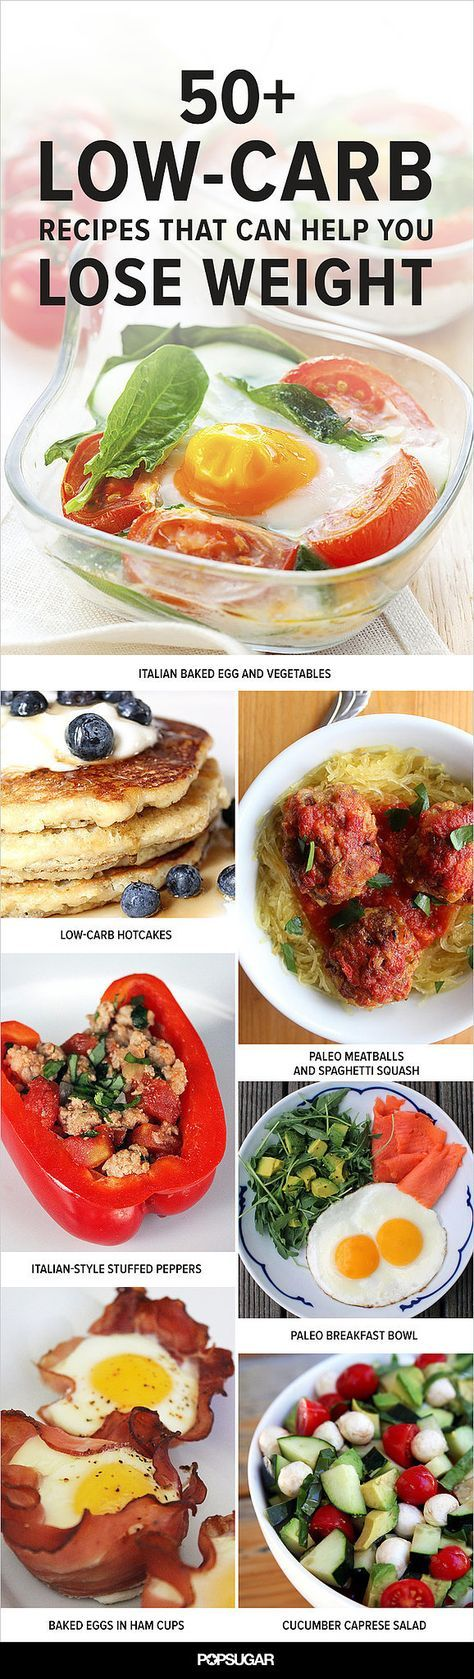 50+ Low-Carb Recipes That Can Help You Lose Weight